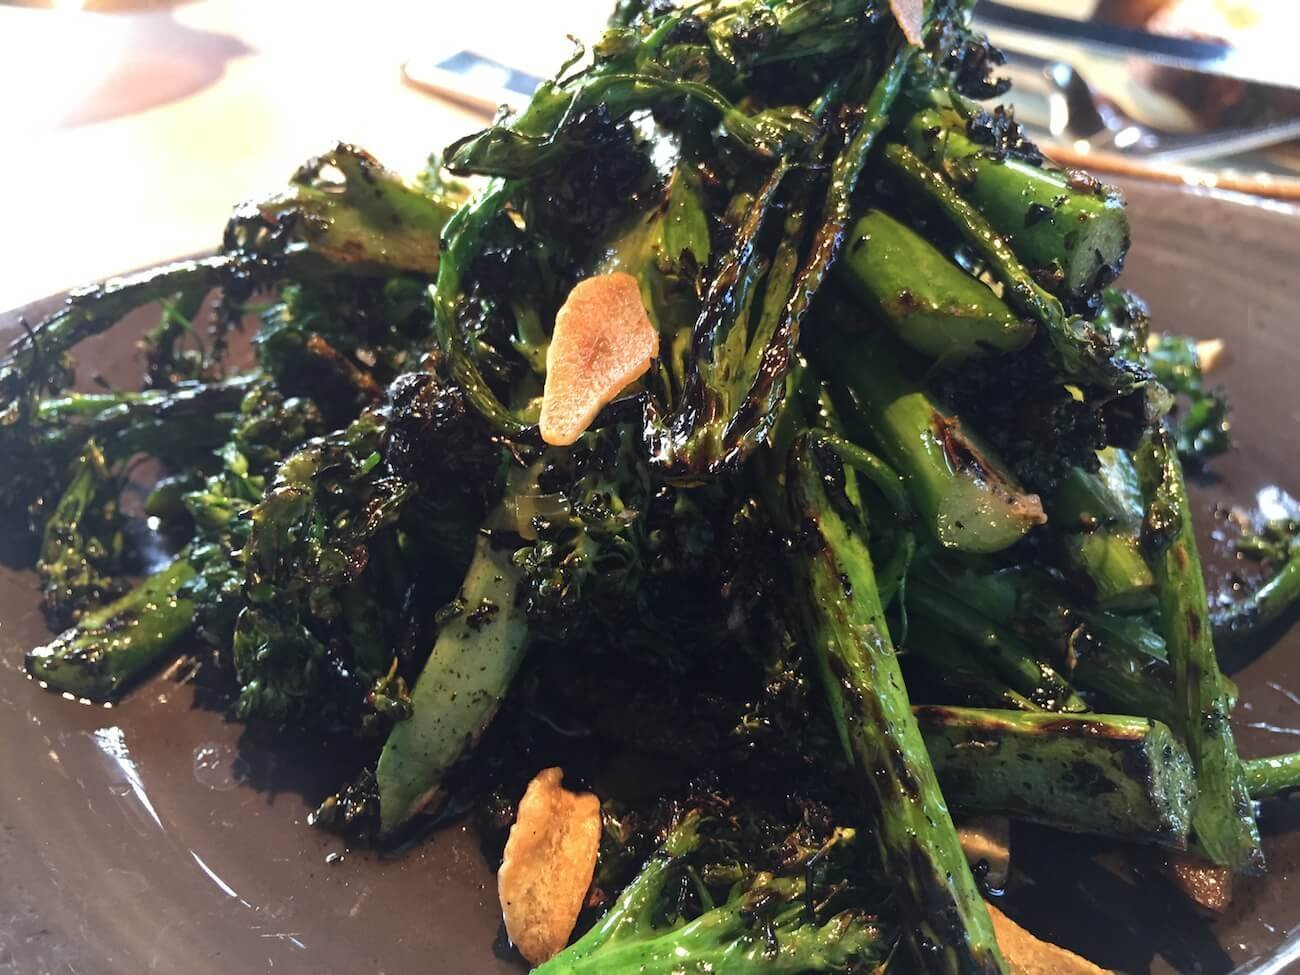 WOOD GRILLED BROCCOLI DI CICCIO